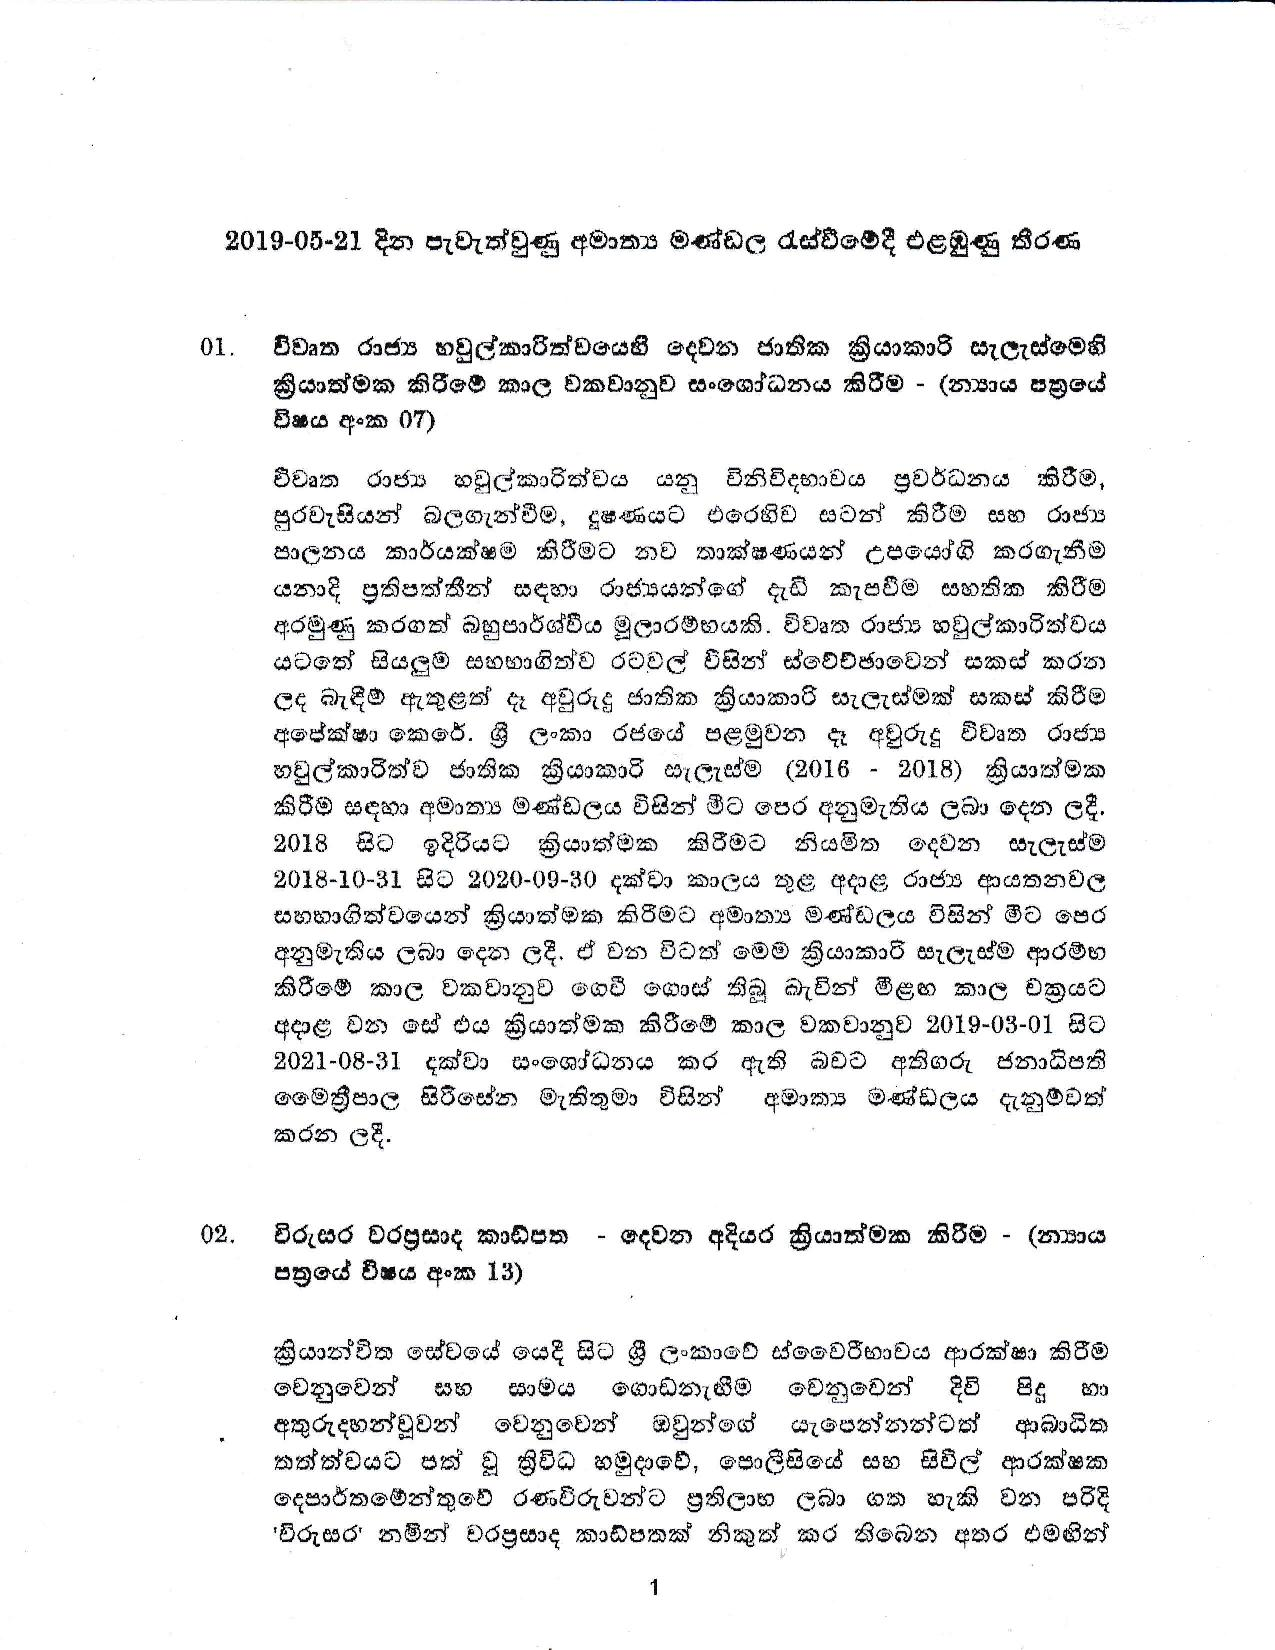 Cabinet Decision on 21.05.2019 page 001